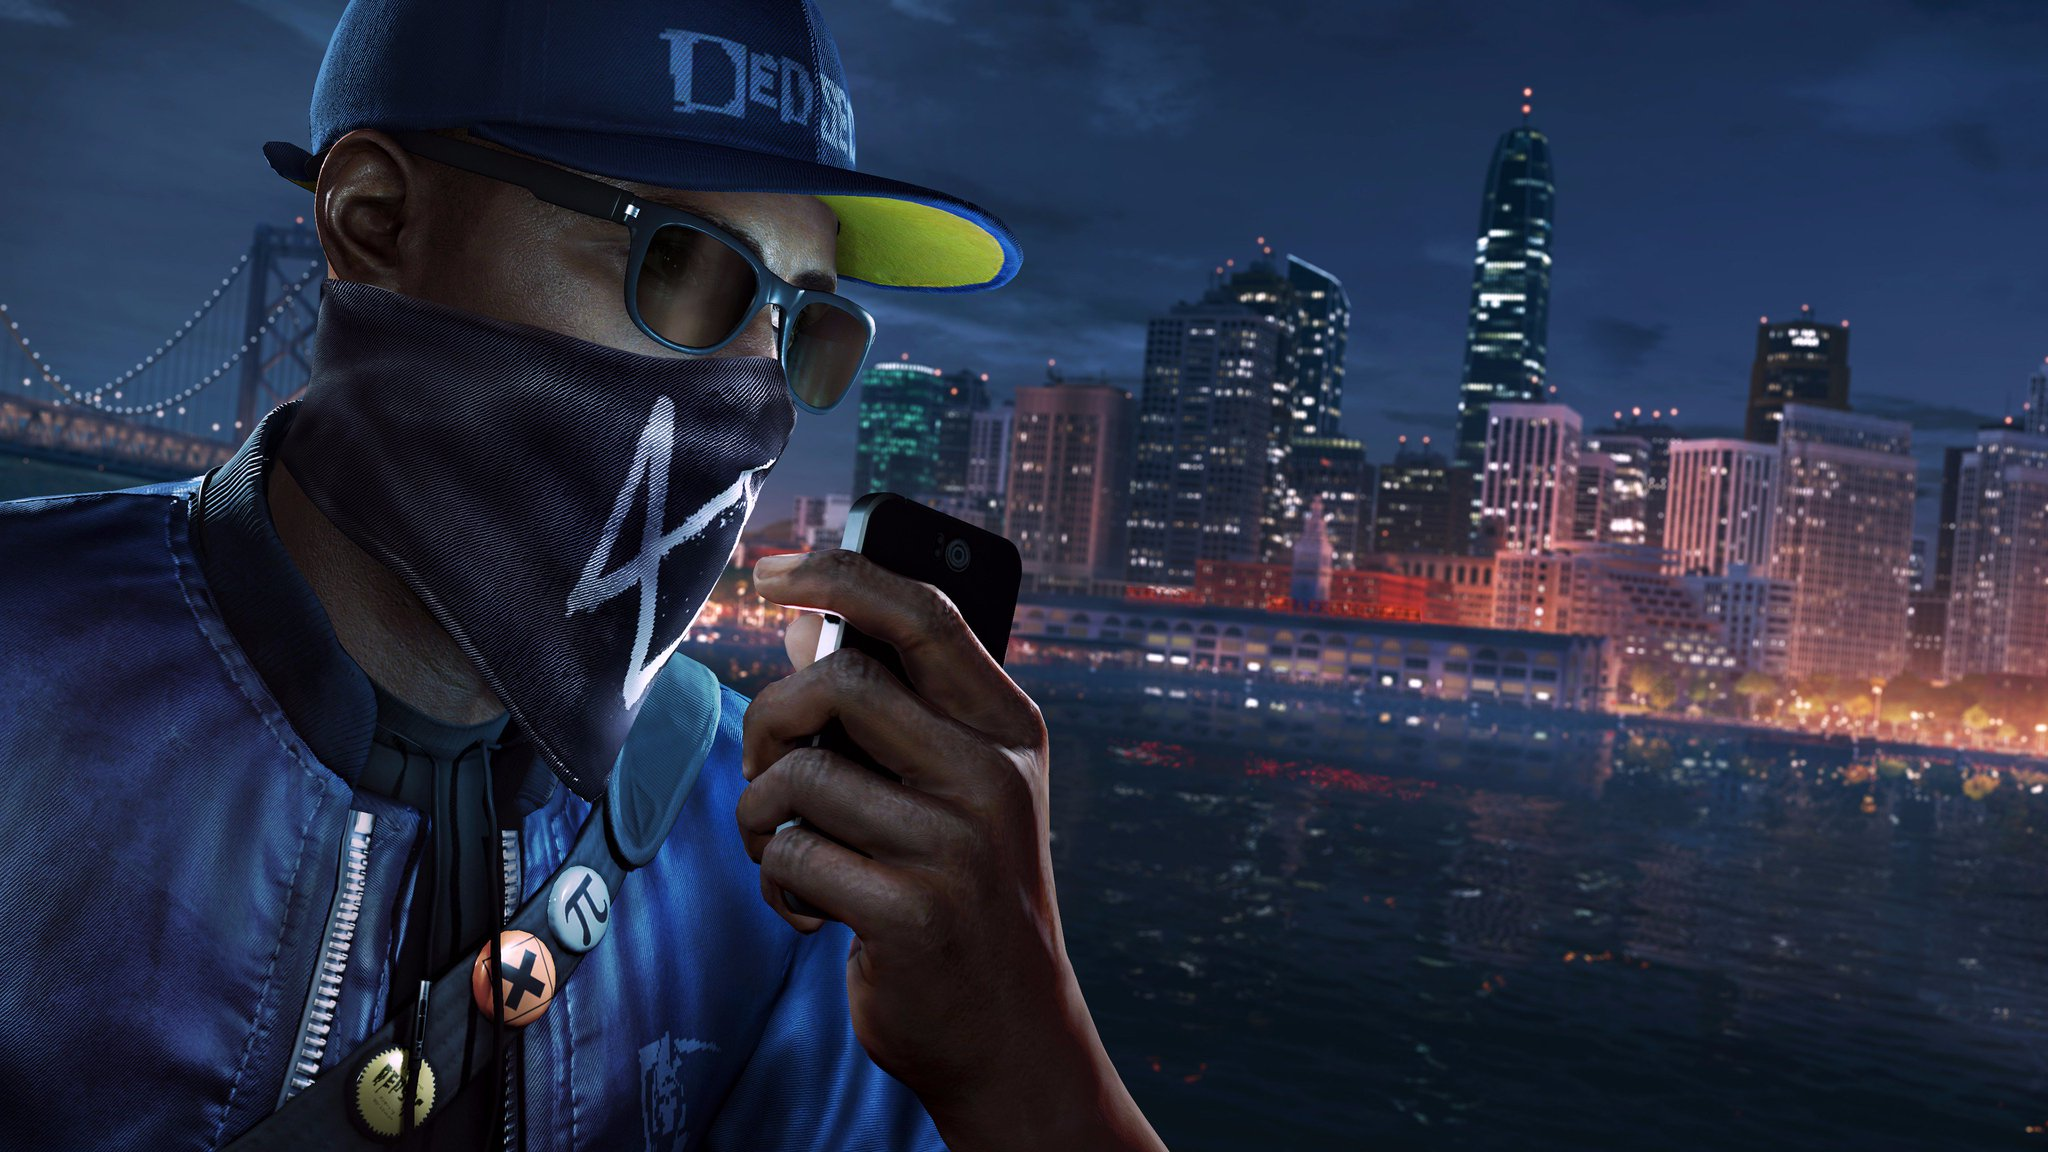 Watch Dogs Live Wallpaper Wallpaper For You